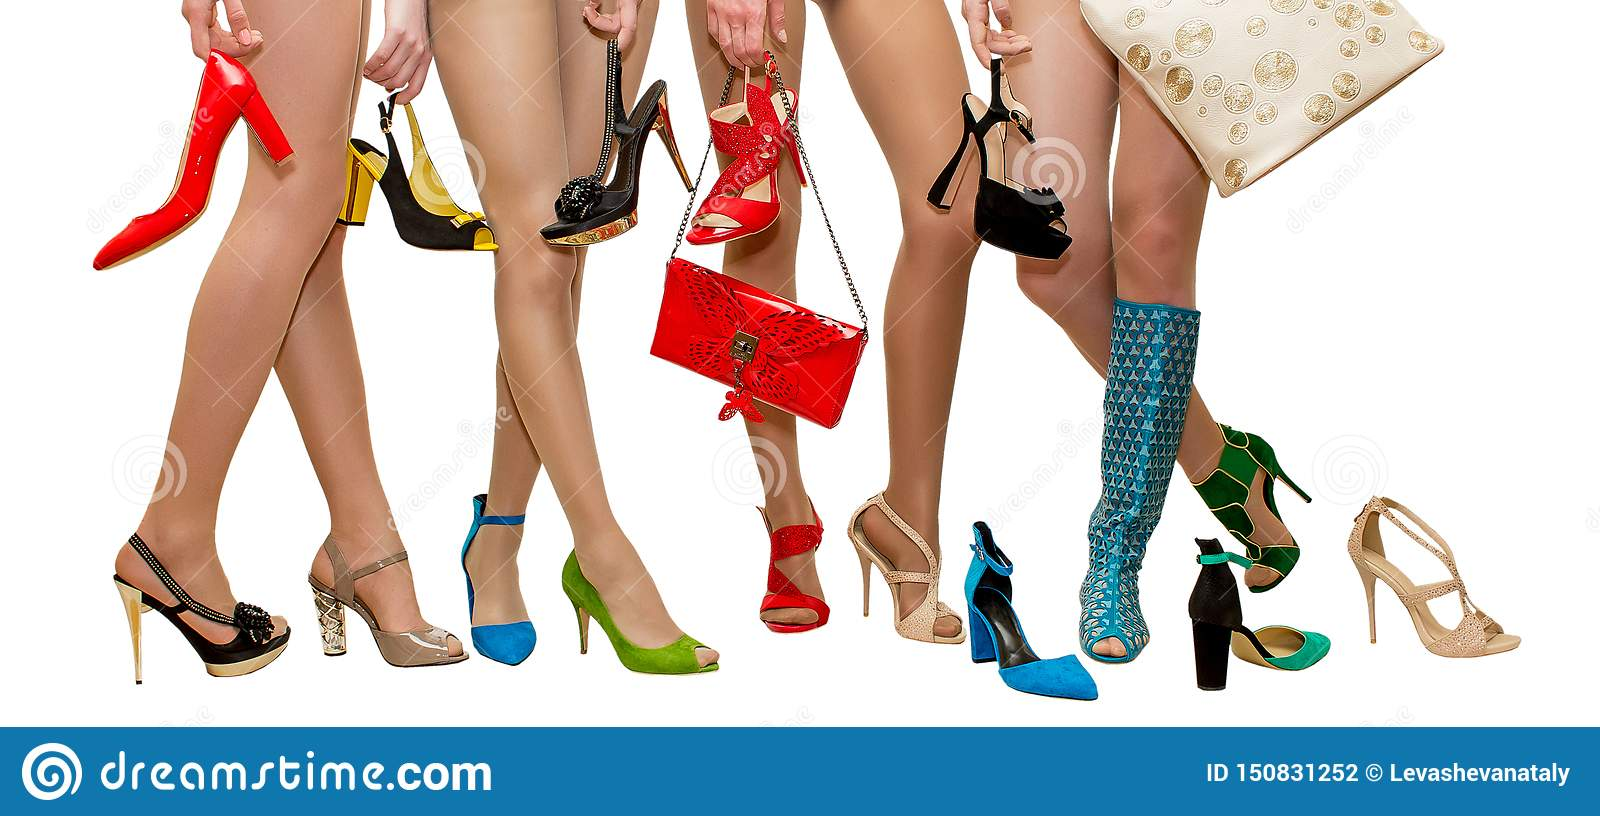 Female legs in different shoes for advertising salon shoes in the fashion magazine on a white background